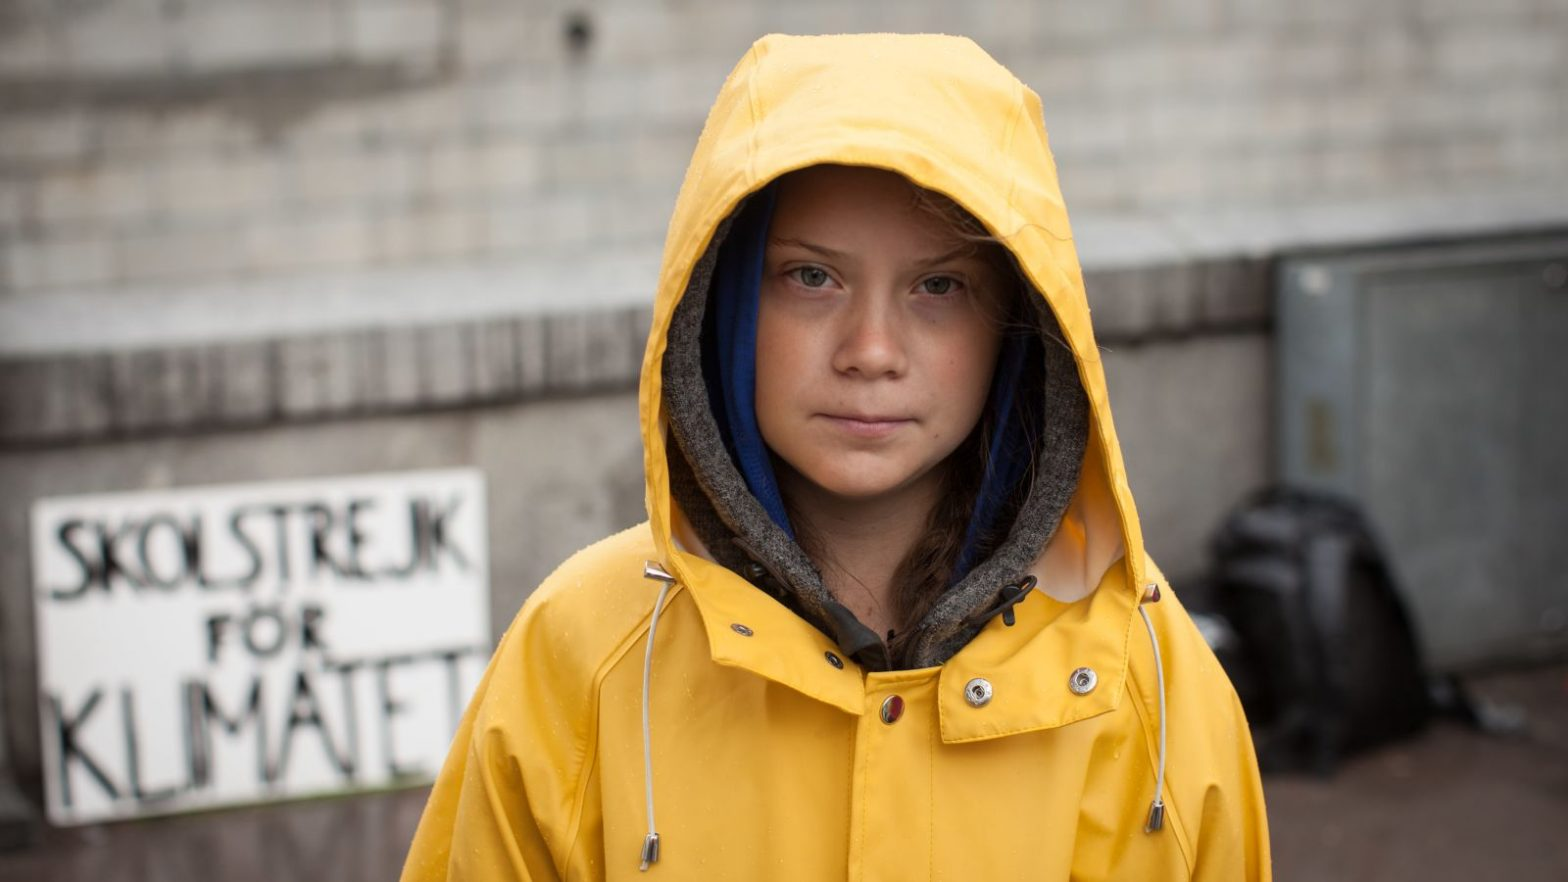 Greta Thunberg Is Sailing Carbon-Free to the UN Climate Summit, But What About Youth Activists of Color?